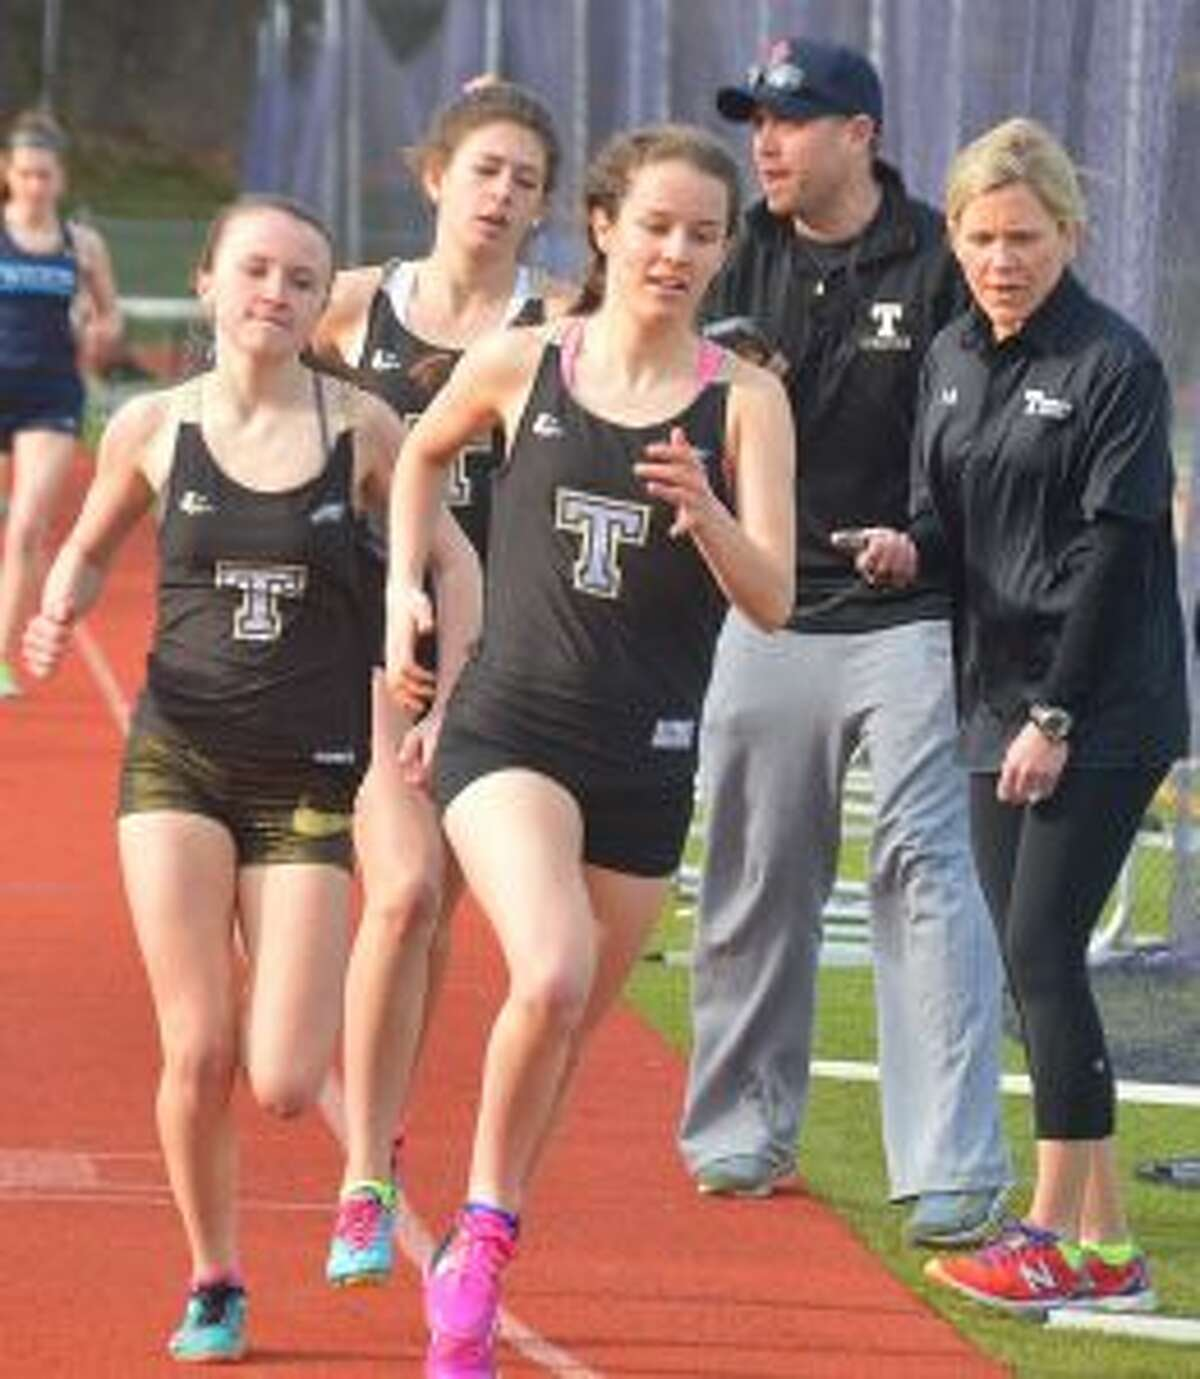 Margaret LoSchiavo won the 3200 meter run in a personal best of 12:12, Ashley Storino placed first in the 1600 meter run at 5:26 and Kate Romanchick took the win in the 800 meter run in 2:30. Looking on are coaches Jim McCaffery and Carrie Hall.